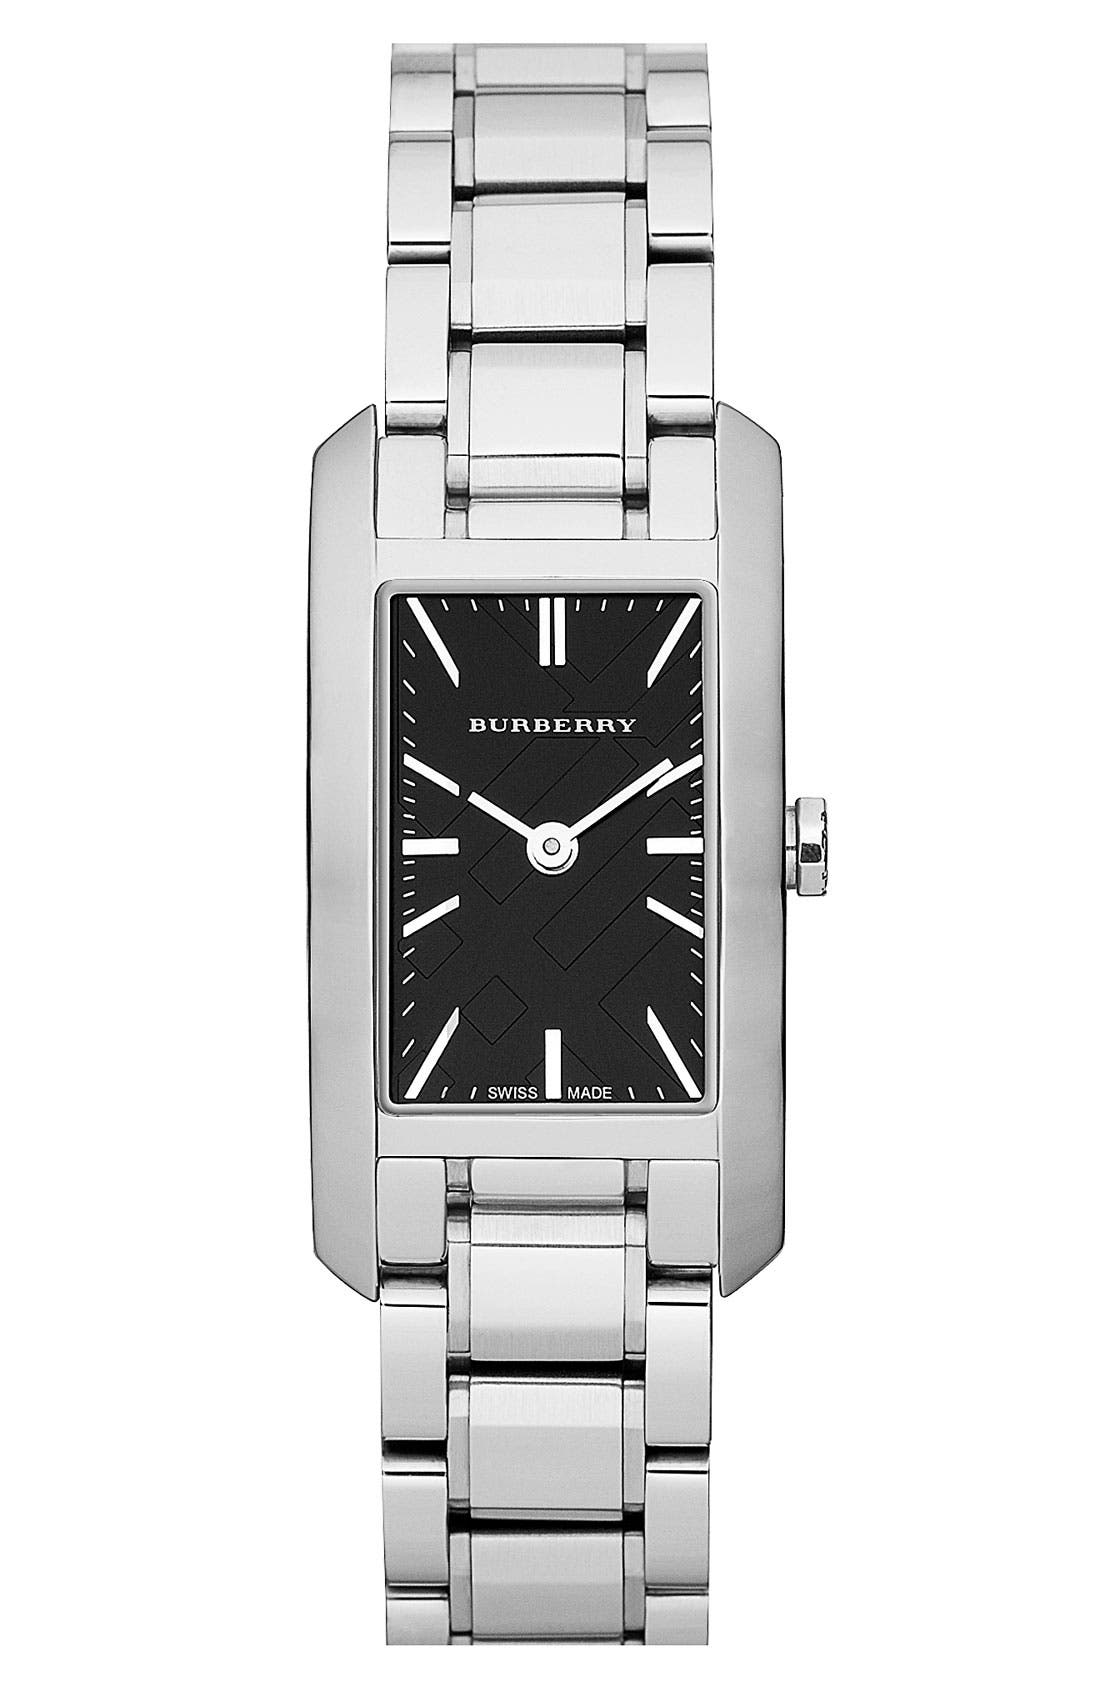 Main Image - Burberry Rectangular Bracelet Watch, 20mm x 26mm